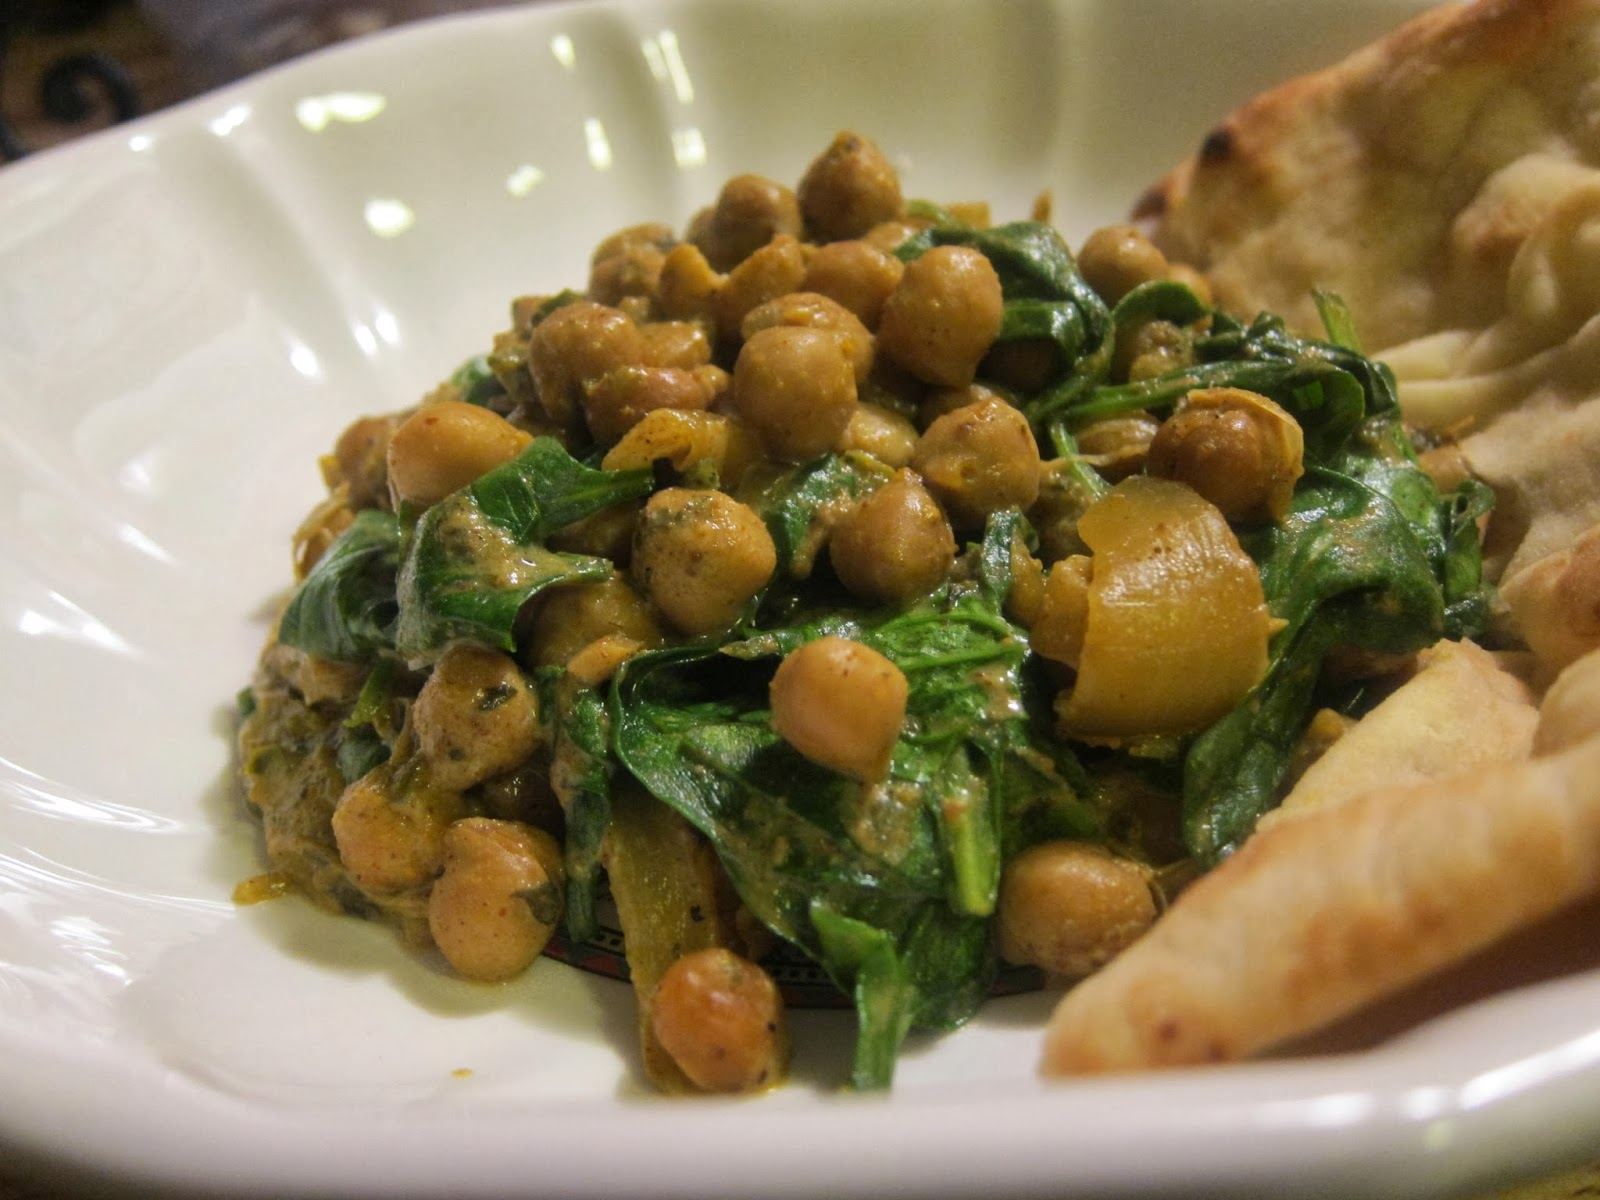 Crockpot Spinach and Chickpea Coconut Curry | The Economical Eater